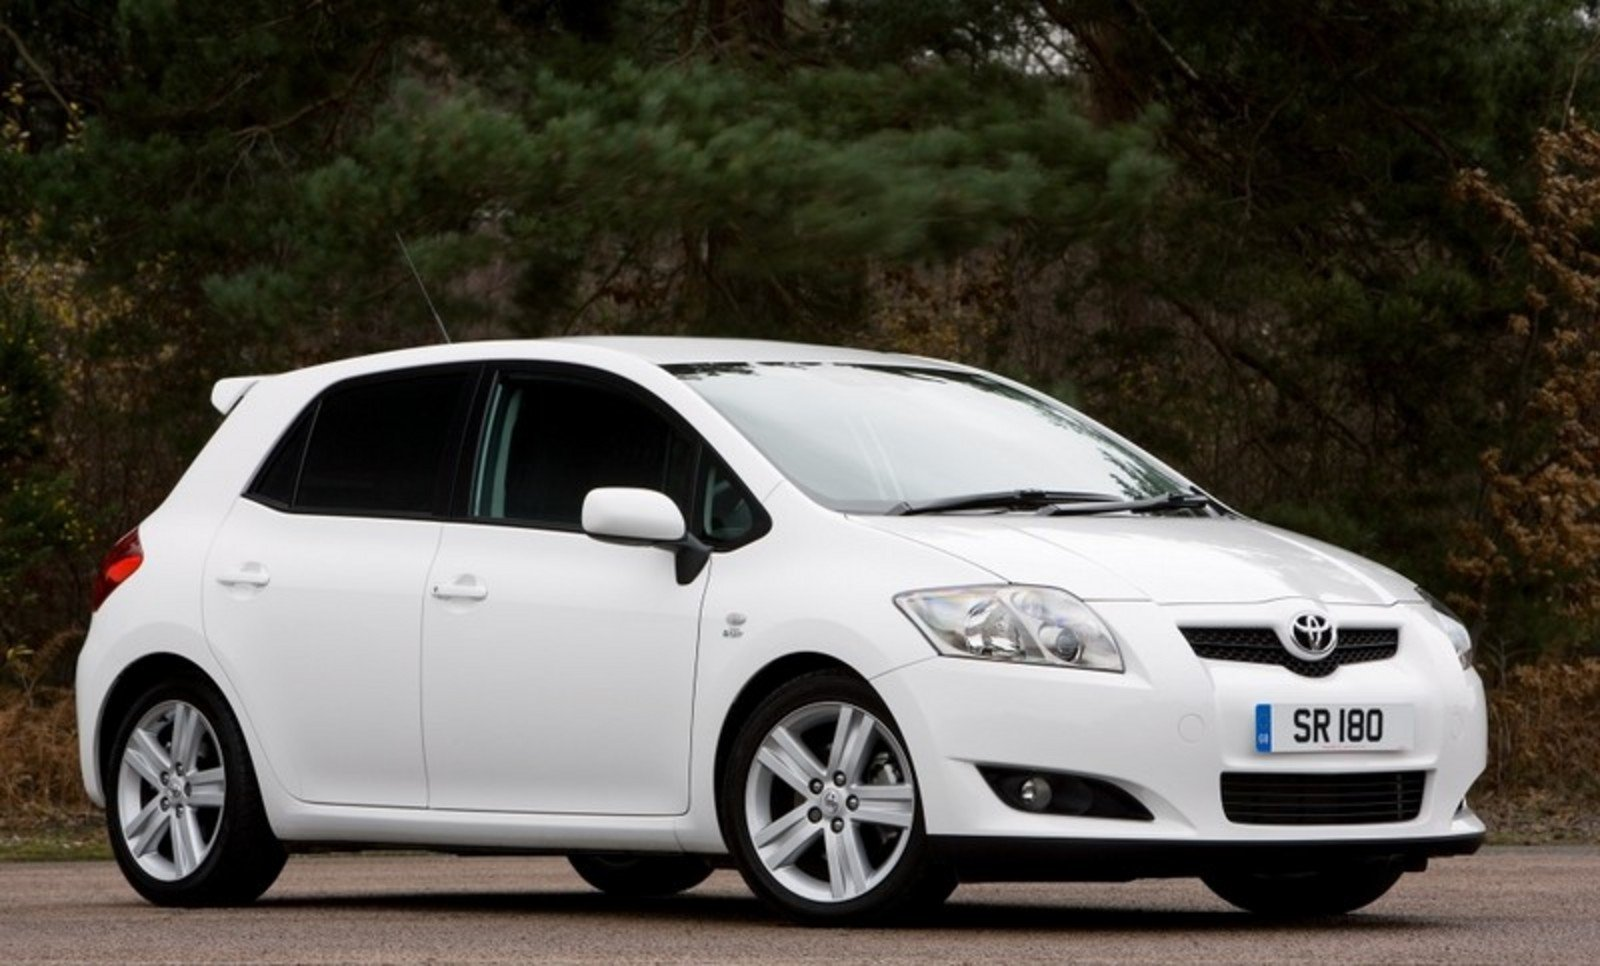 hight resolution of 2008 toyota auris sr180 review top speed toyota yaris hatchback 2010 tuning